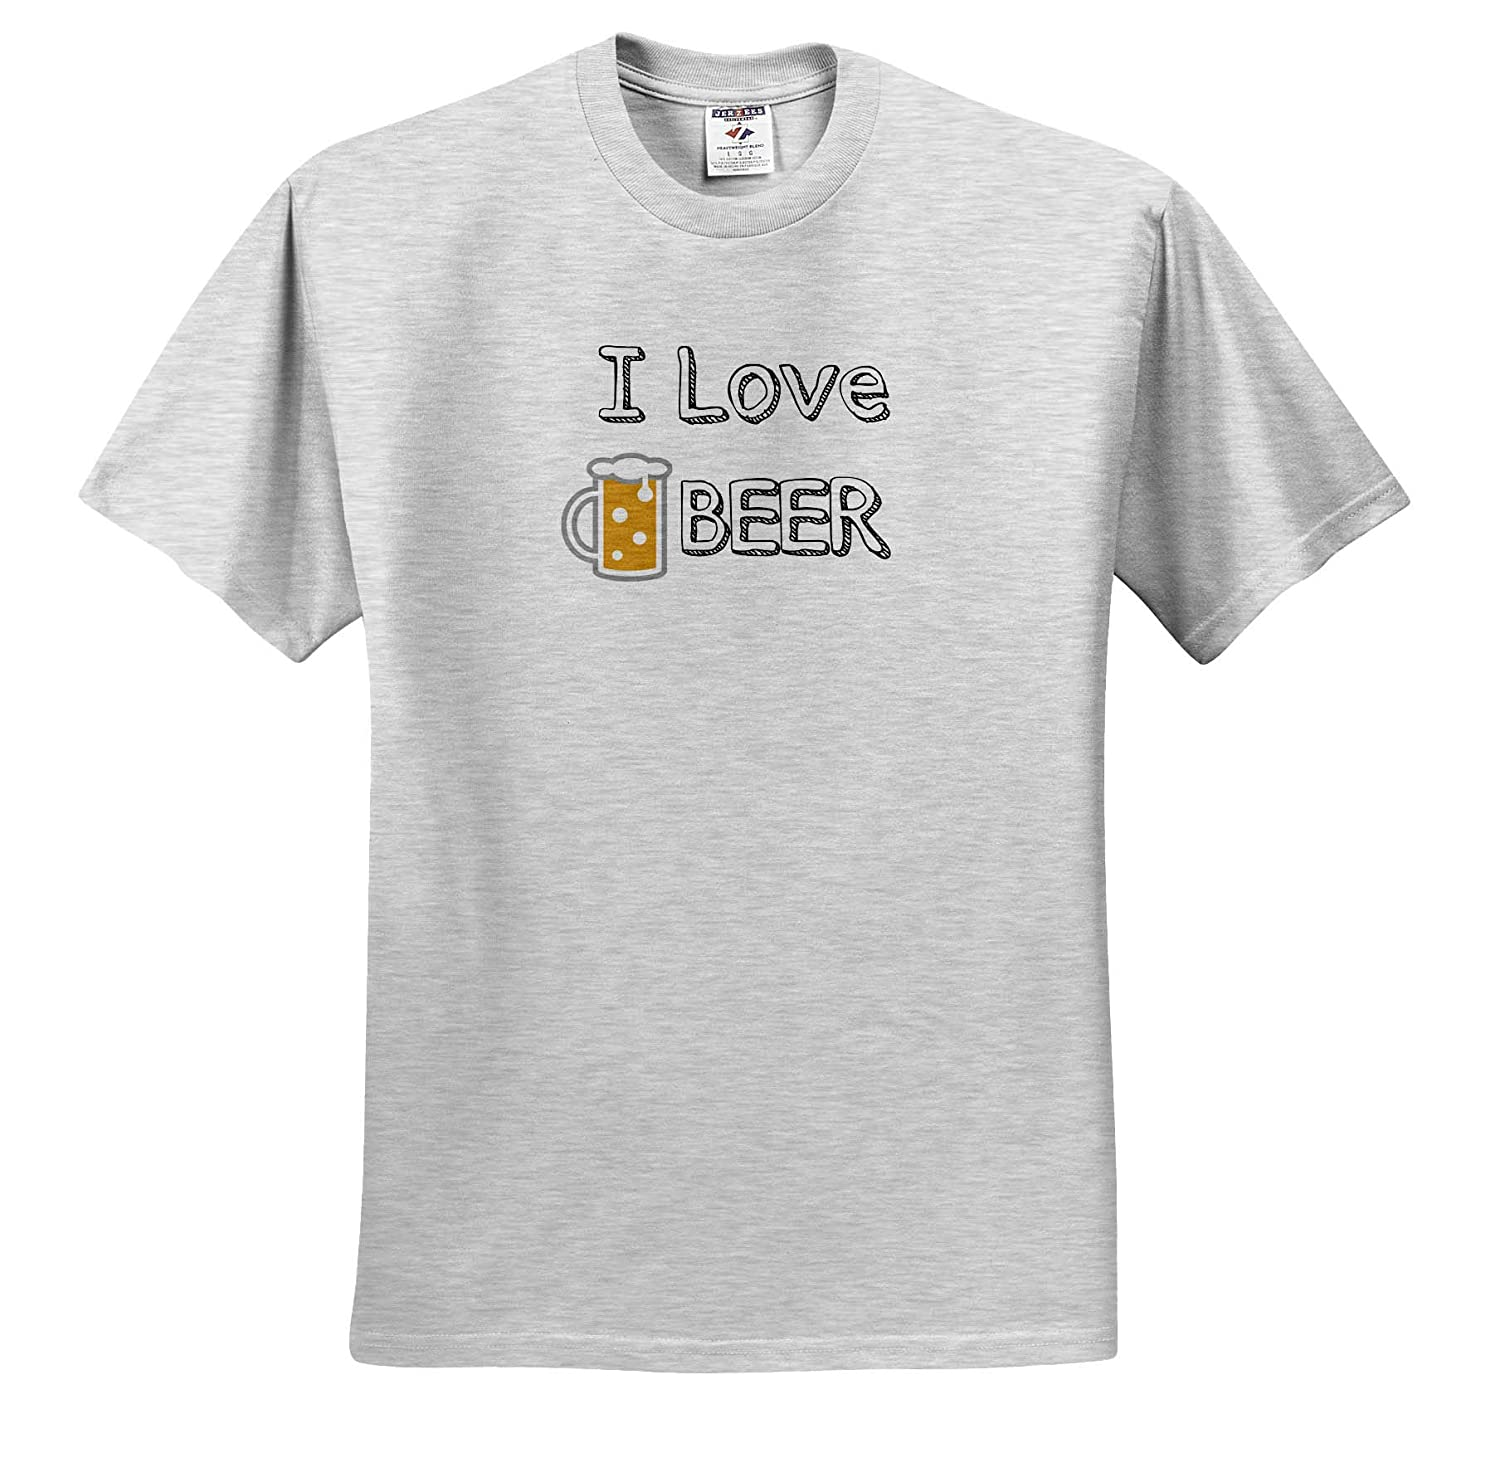 ts/_317420 Image of I Love Beer 3dRose Carrie Merchant Image Quote Adult T-Shirt XL